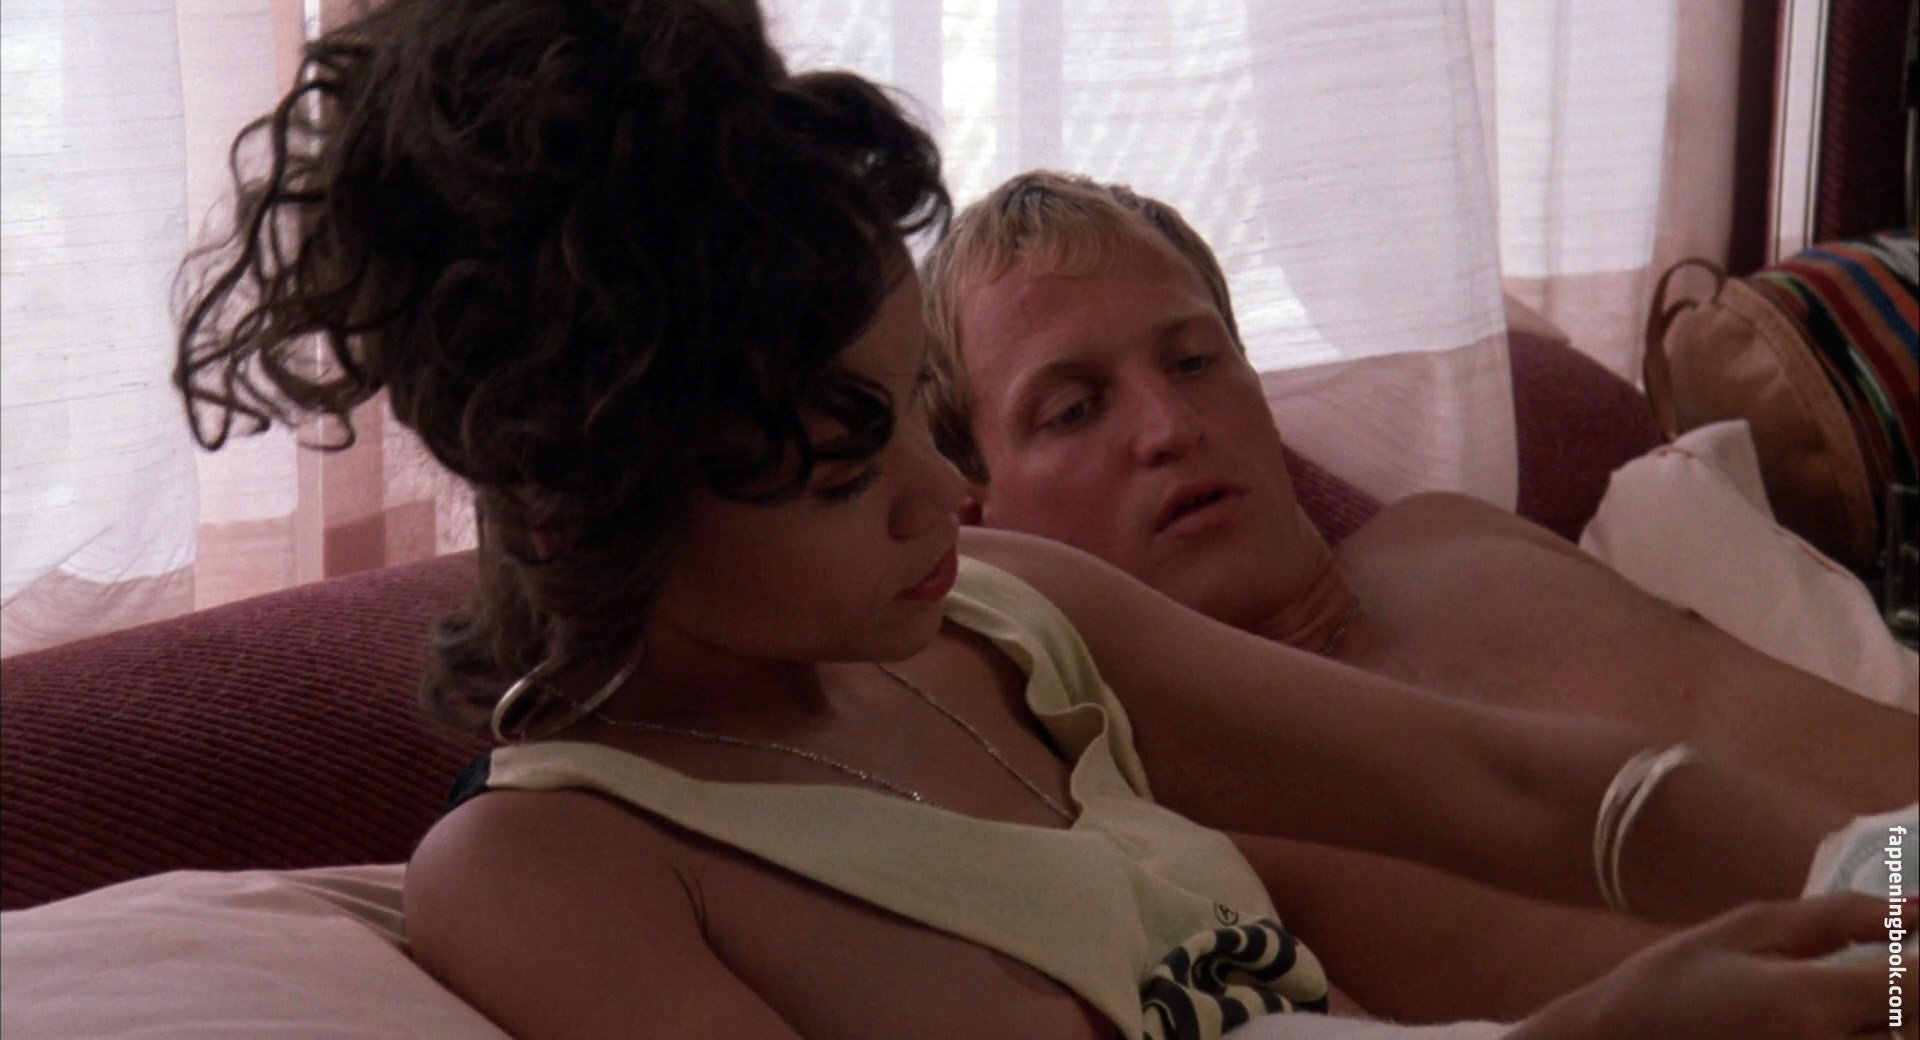 Rosie Perez Nude Sexy The Fappening Uncensored Photo